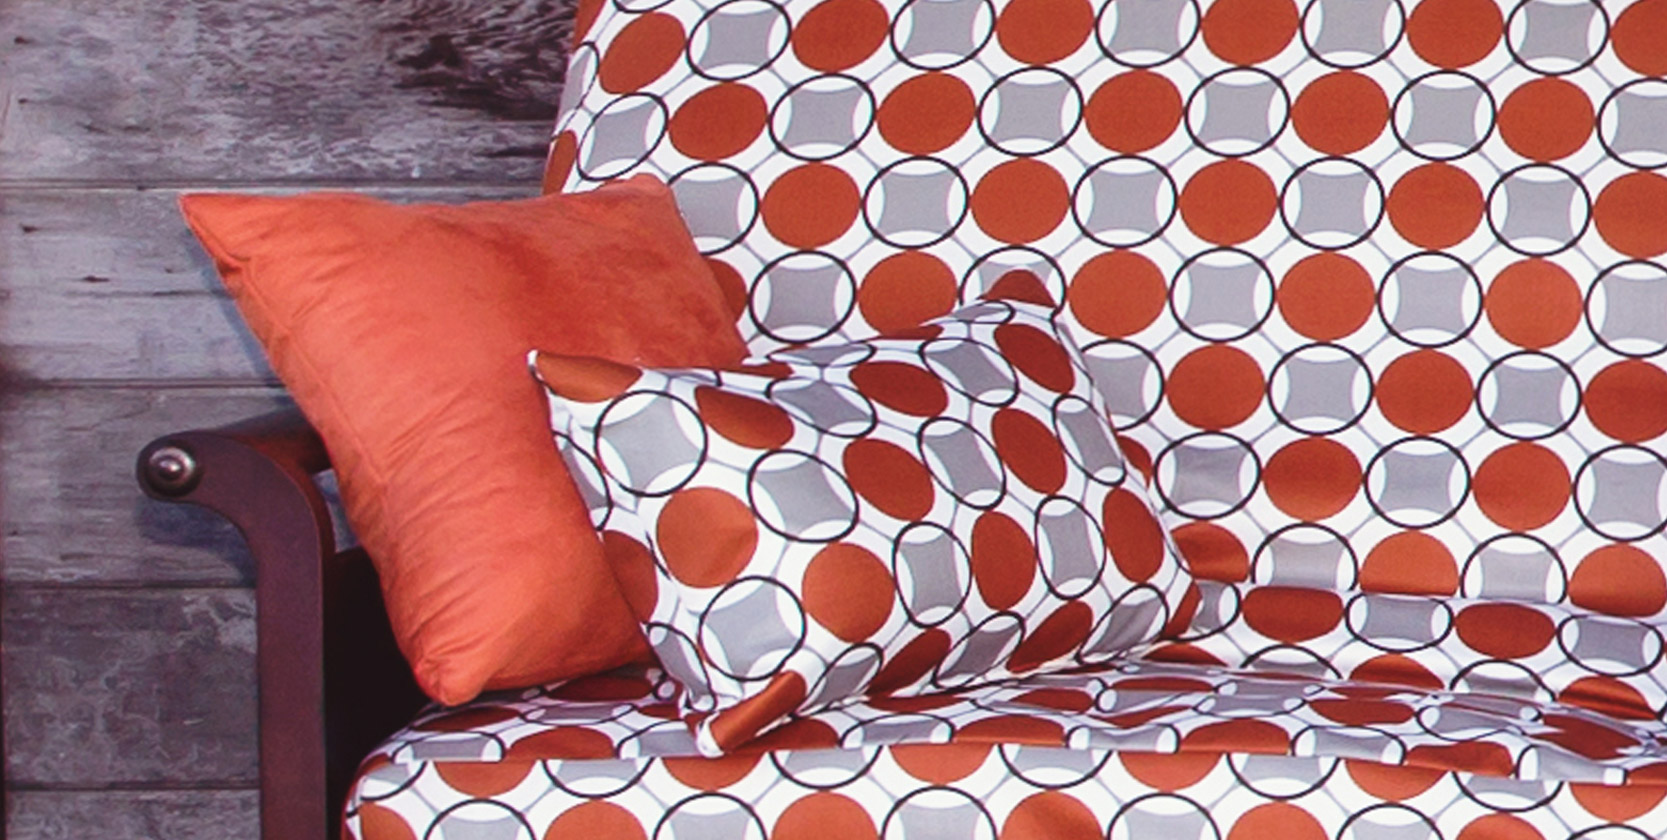 Choosing the right futon slipcover Color & Pattern